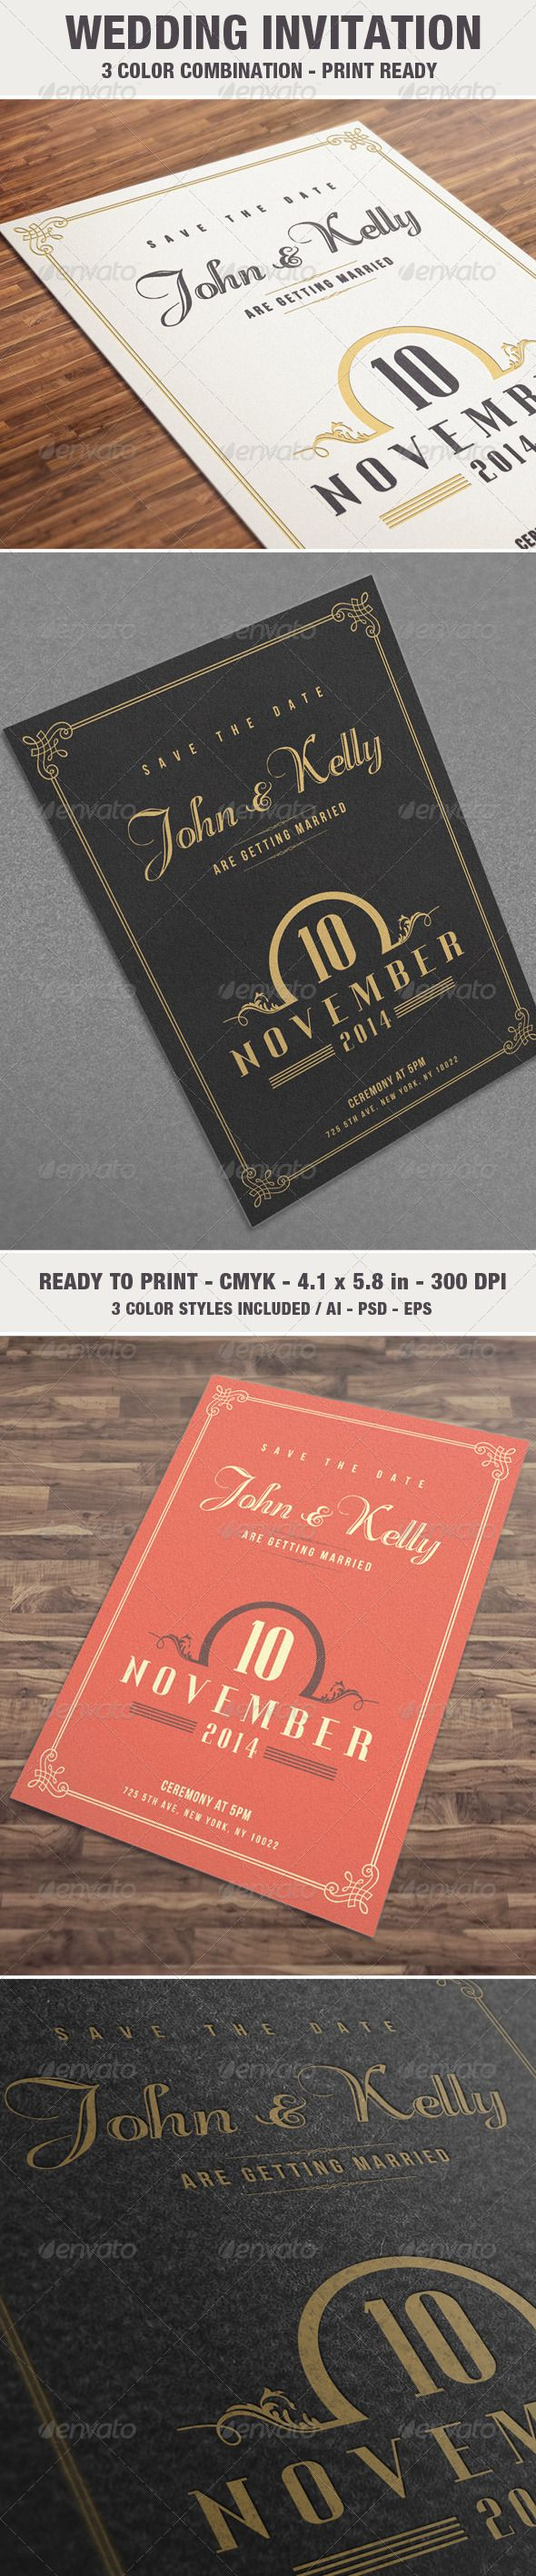 business event invitation templates%0A Elegant  u     Vintage Wedding Invitation   Card V